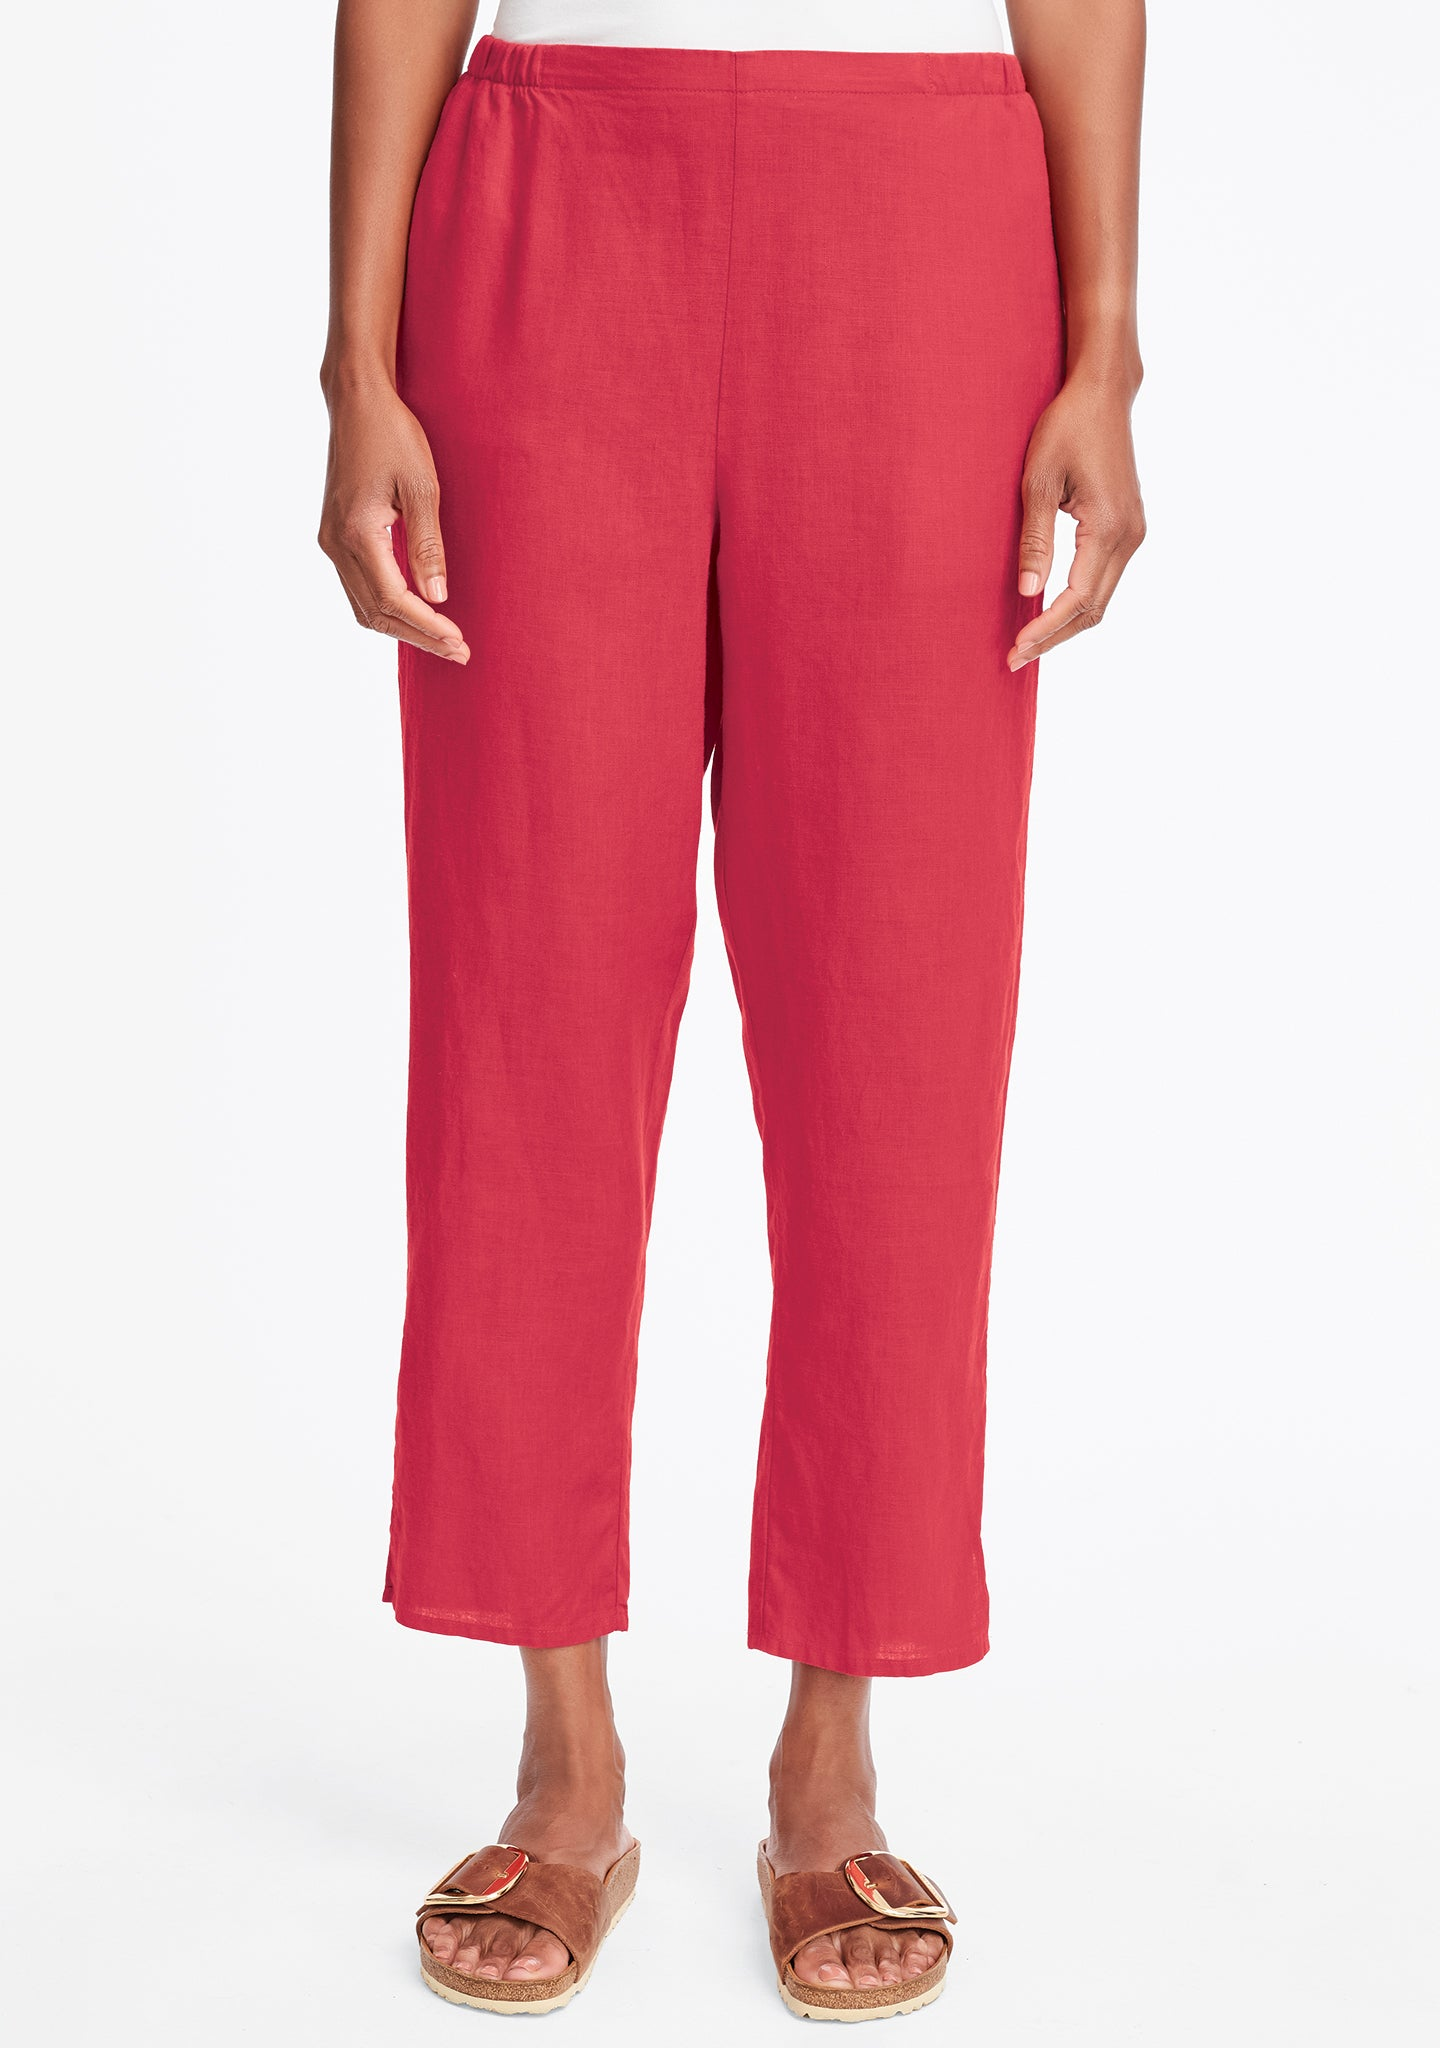 pocketed ankle pant red